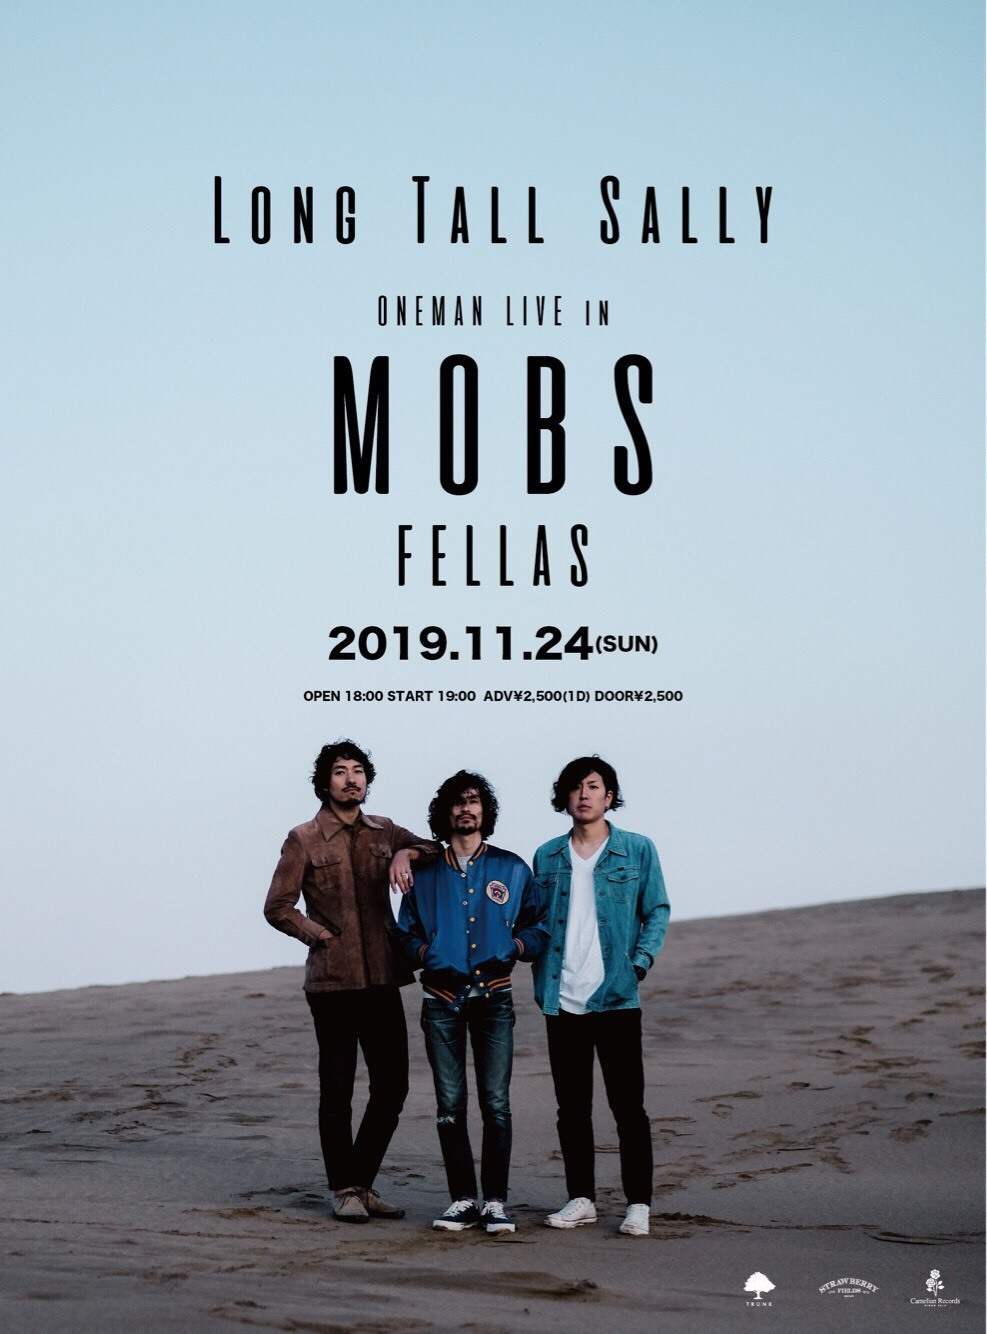 LONG TALL SARRY ONEMAN LIVE @MOBS  レポ_e0115904_04110663.jpg